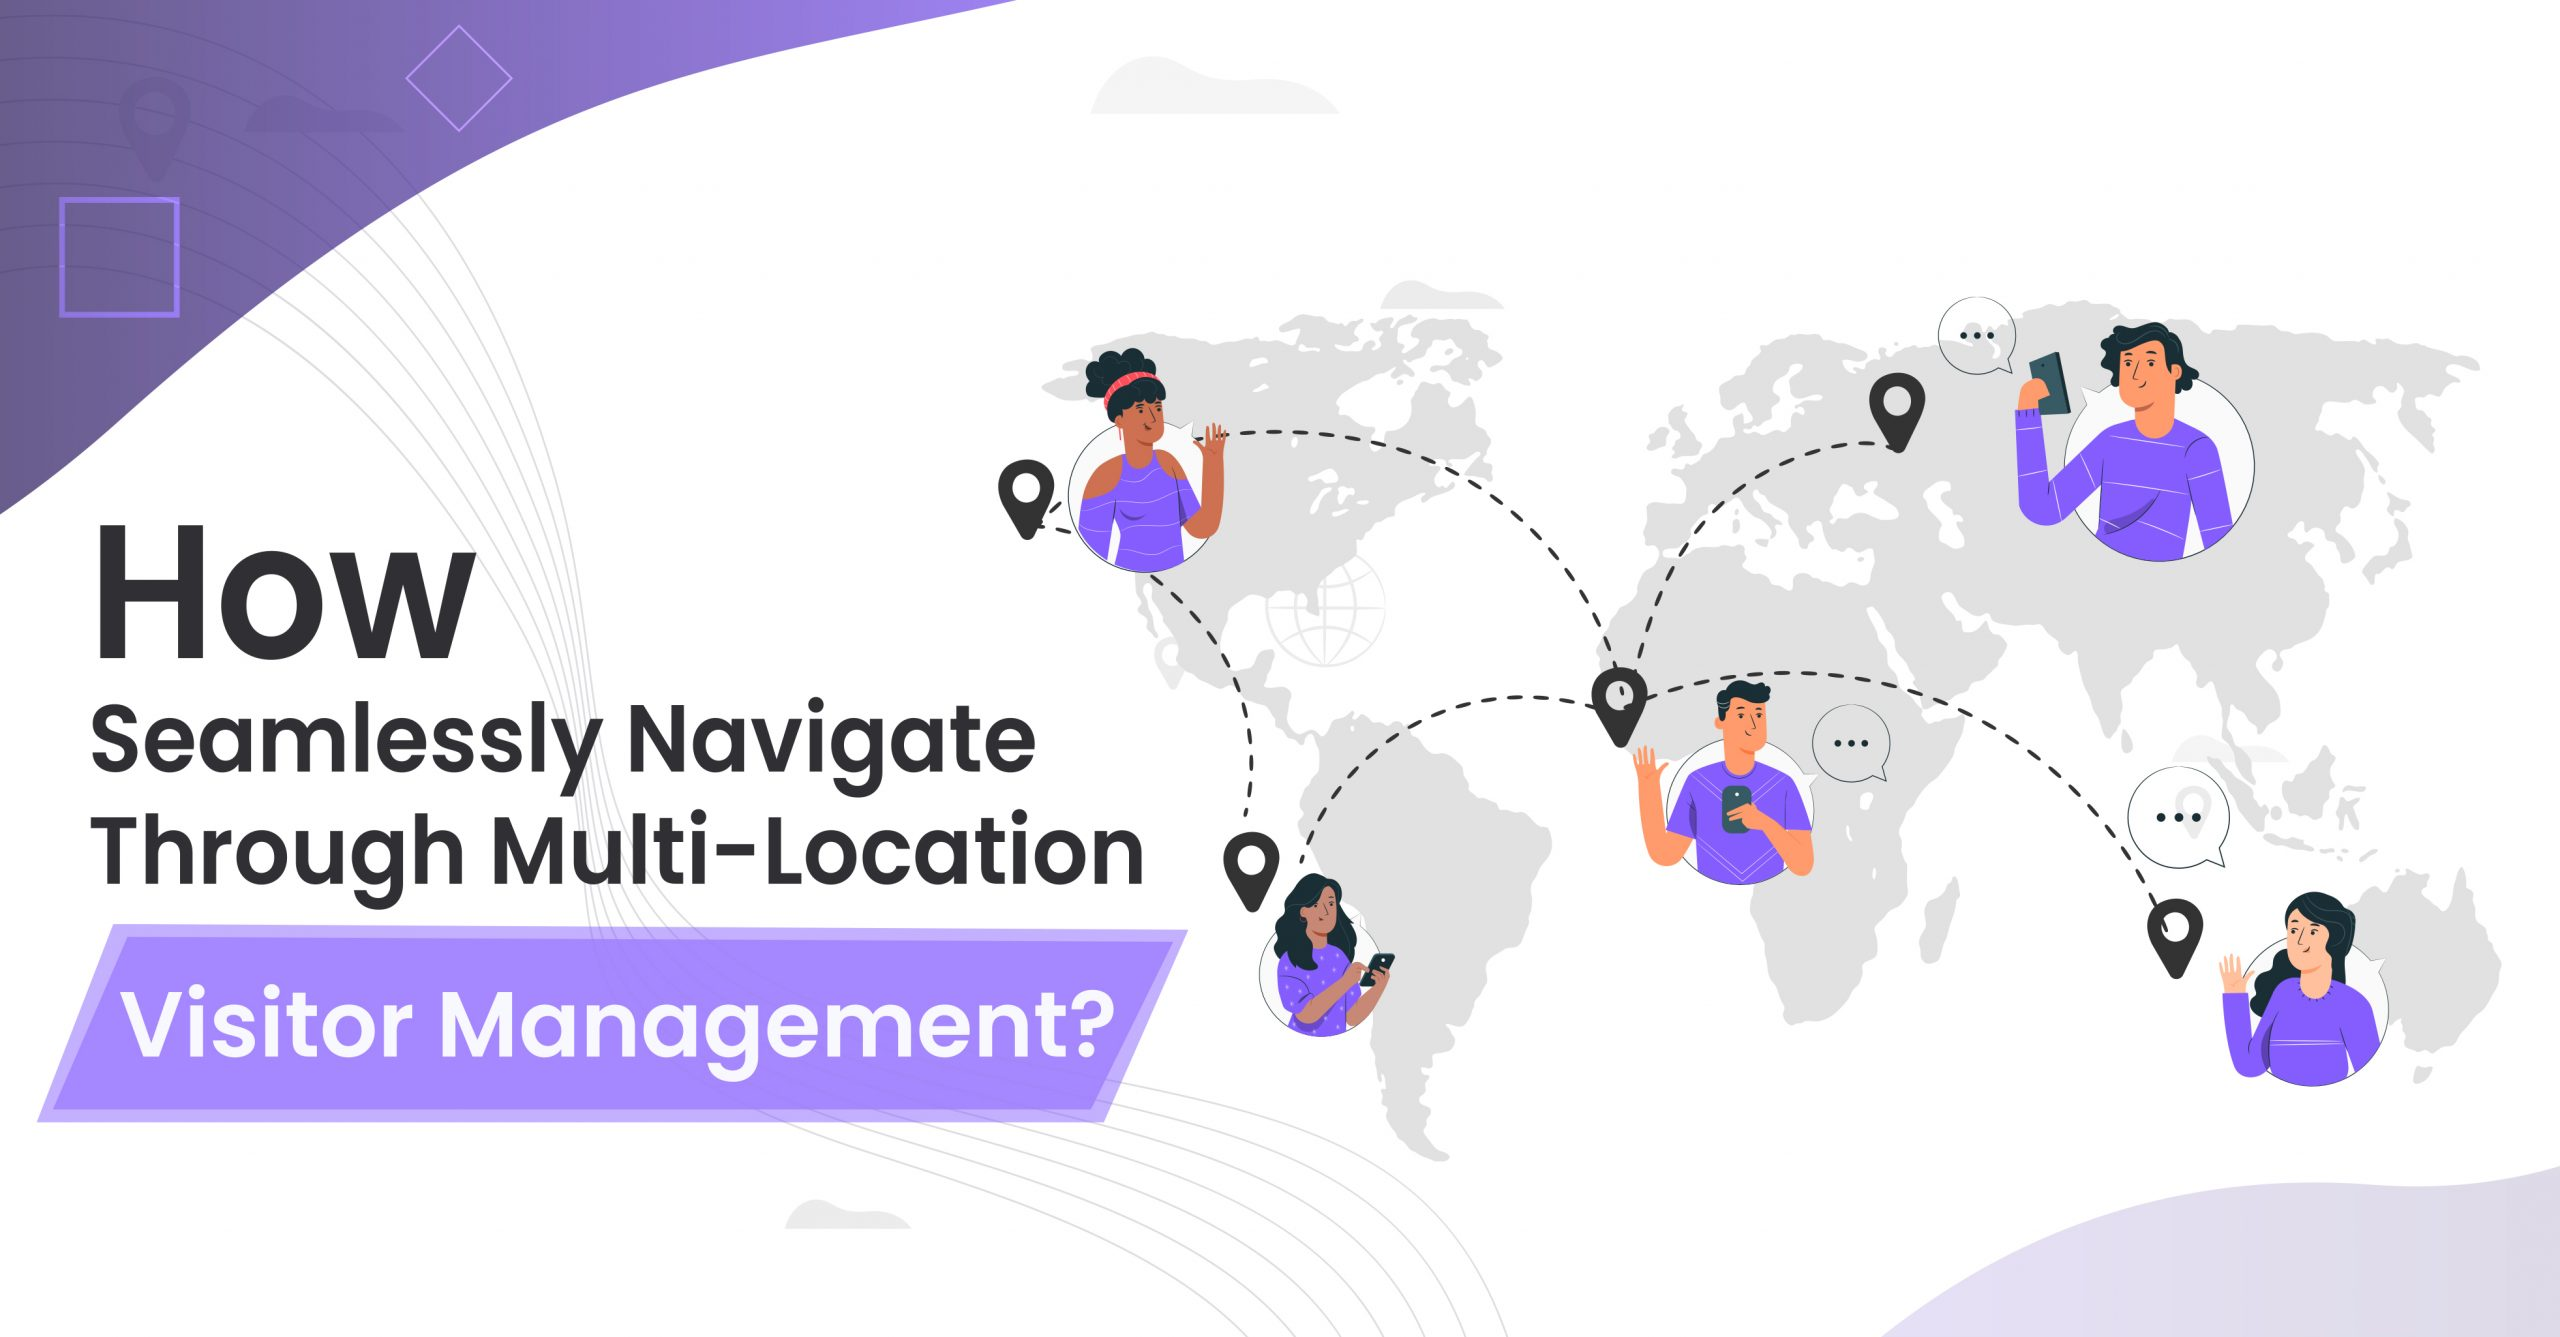 How to Seamlessly Navigate Through Multi Location Visitor Management